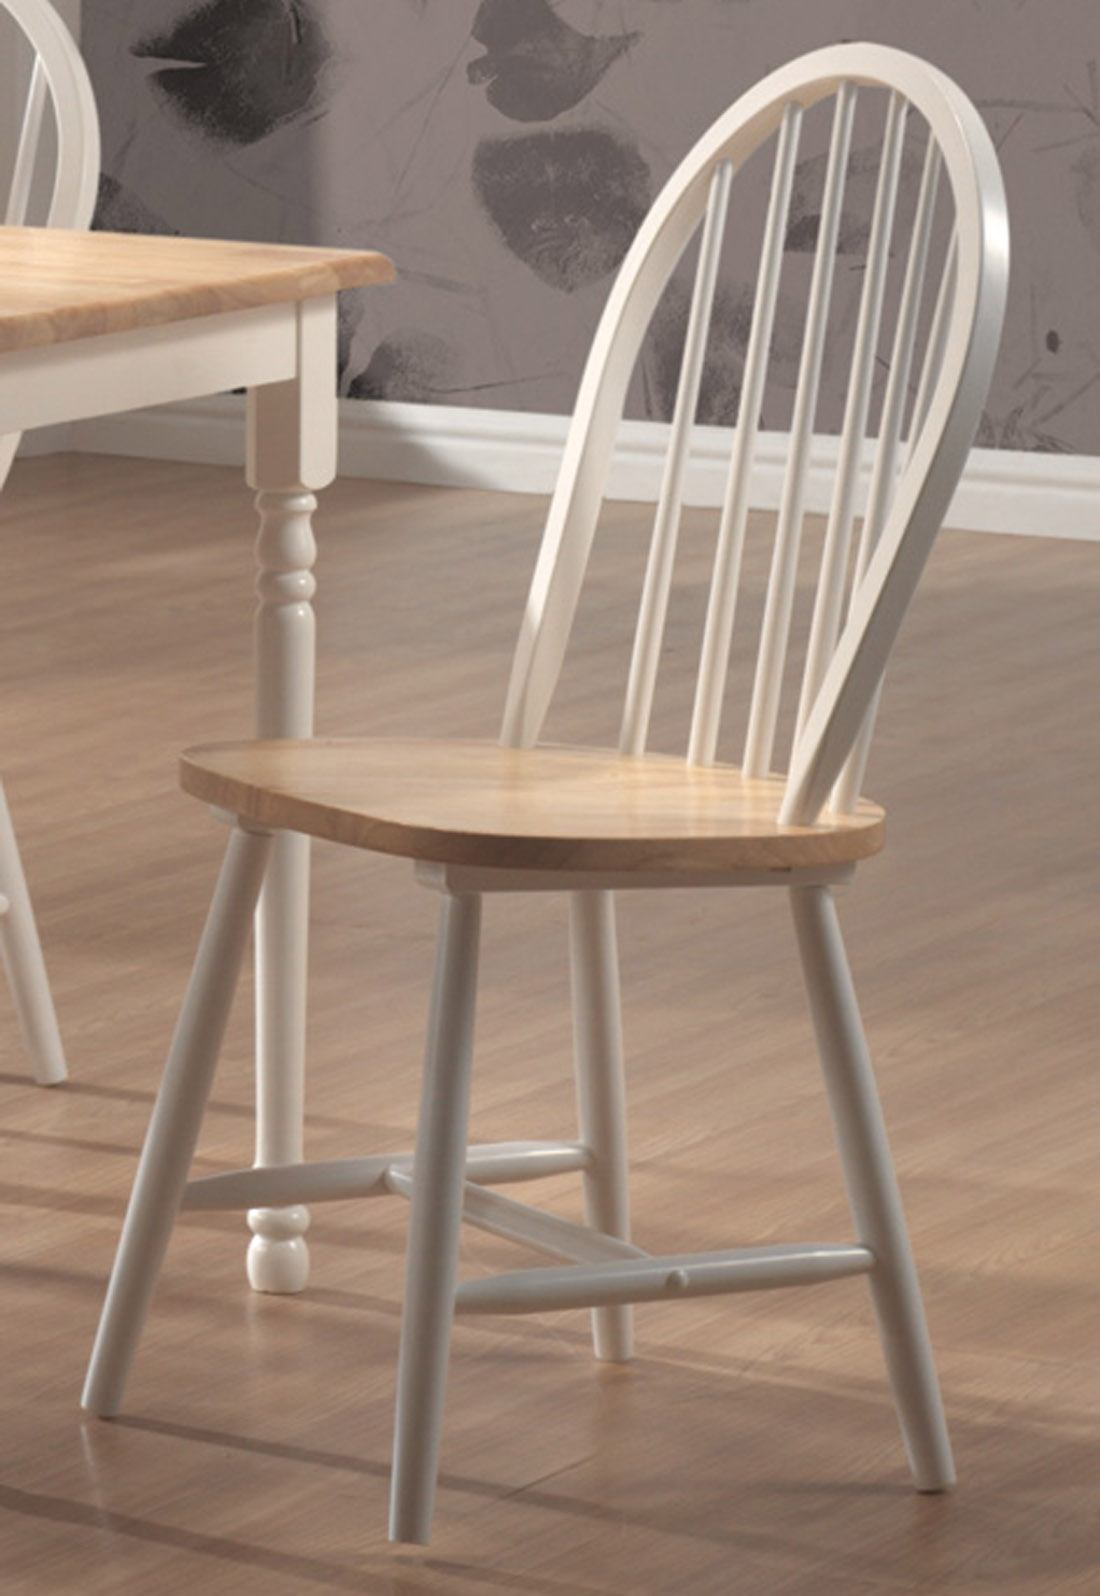 Coaster Side Chair in White and Natural Finish (Set of 4) 4129